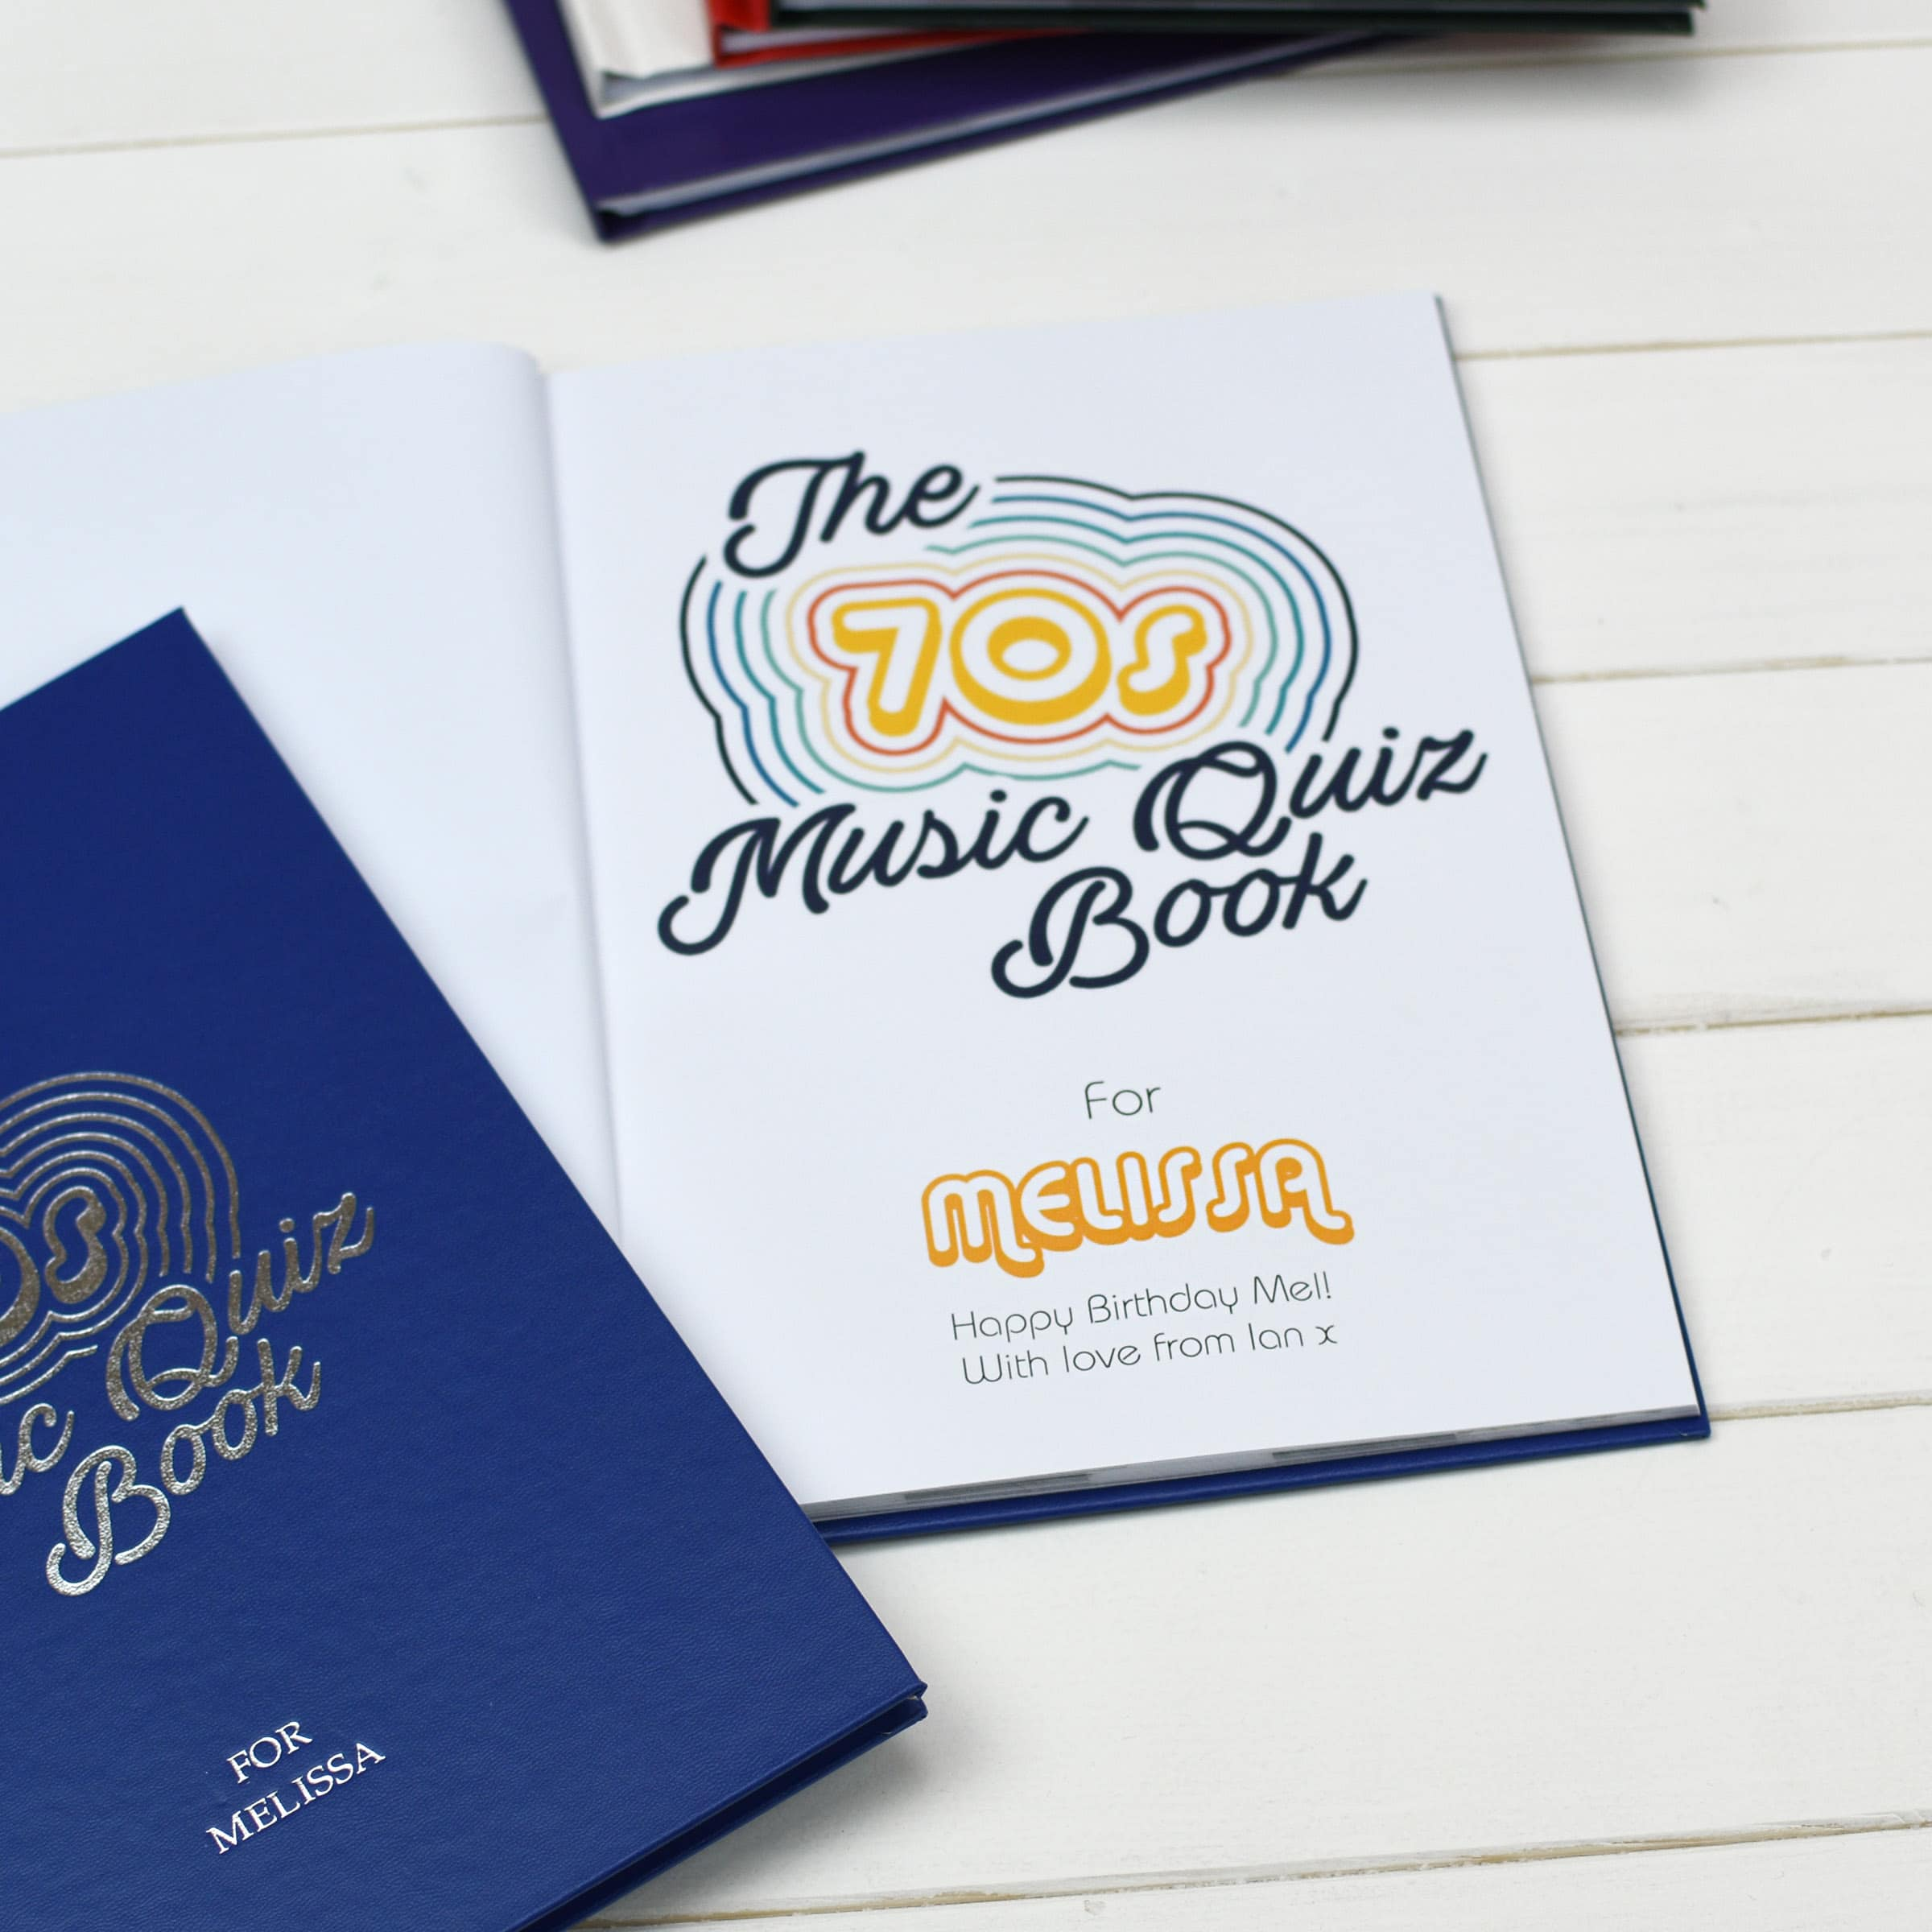 Personalized 1970s Music Quiz Book